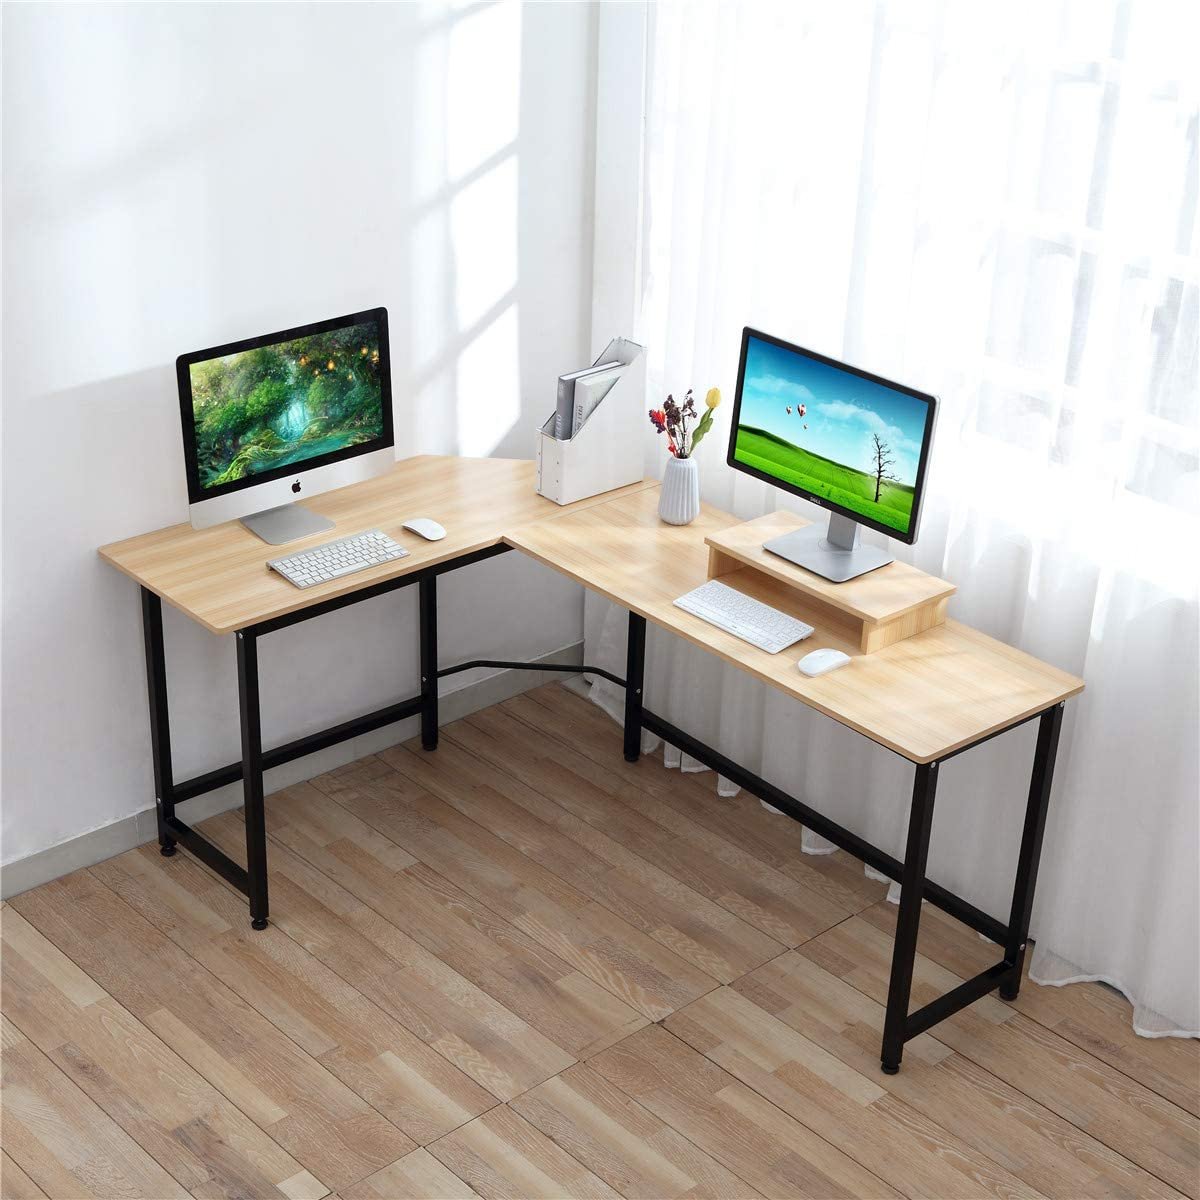 Computer Desk – CrazyLynX Corner Desk PC Workstation Table with Monitor Stand for PC Laptop, for Home Office, Wood Metal Teak-N